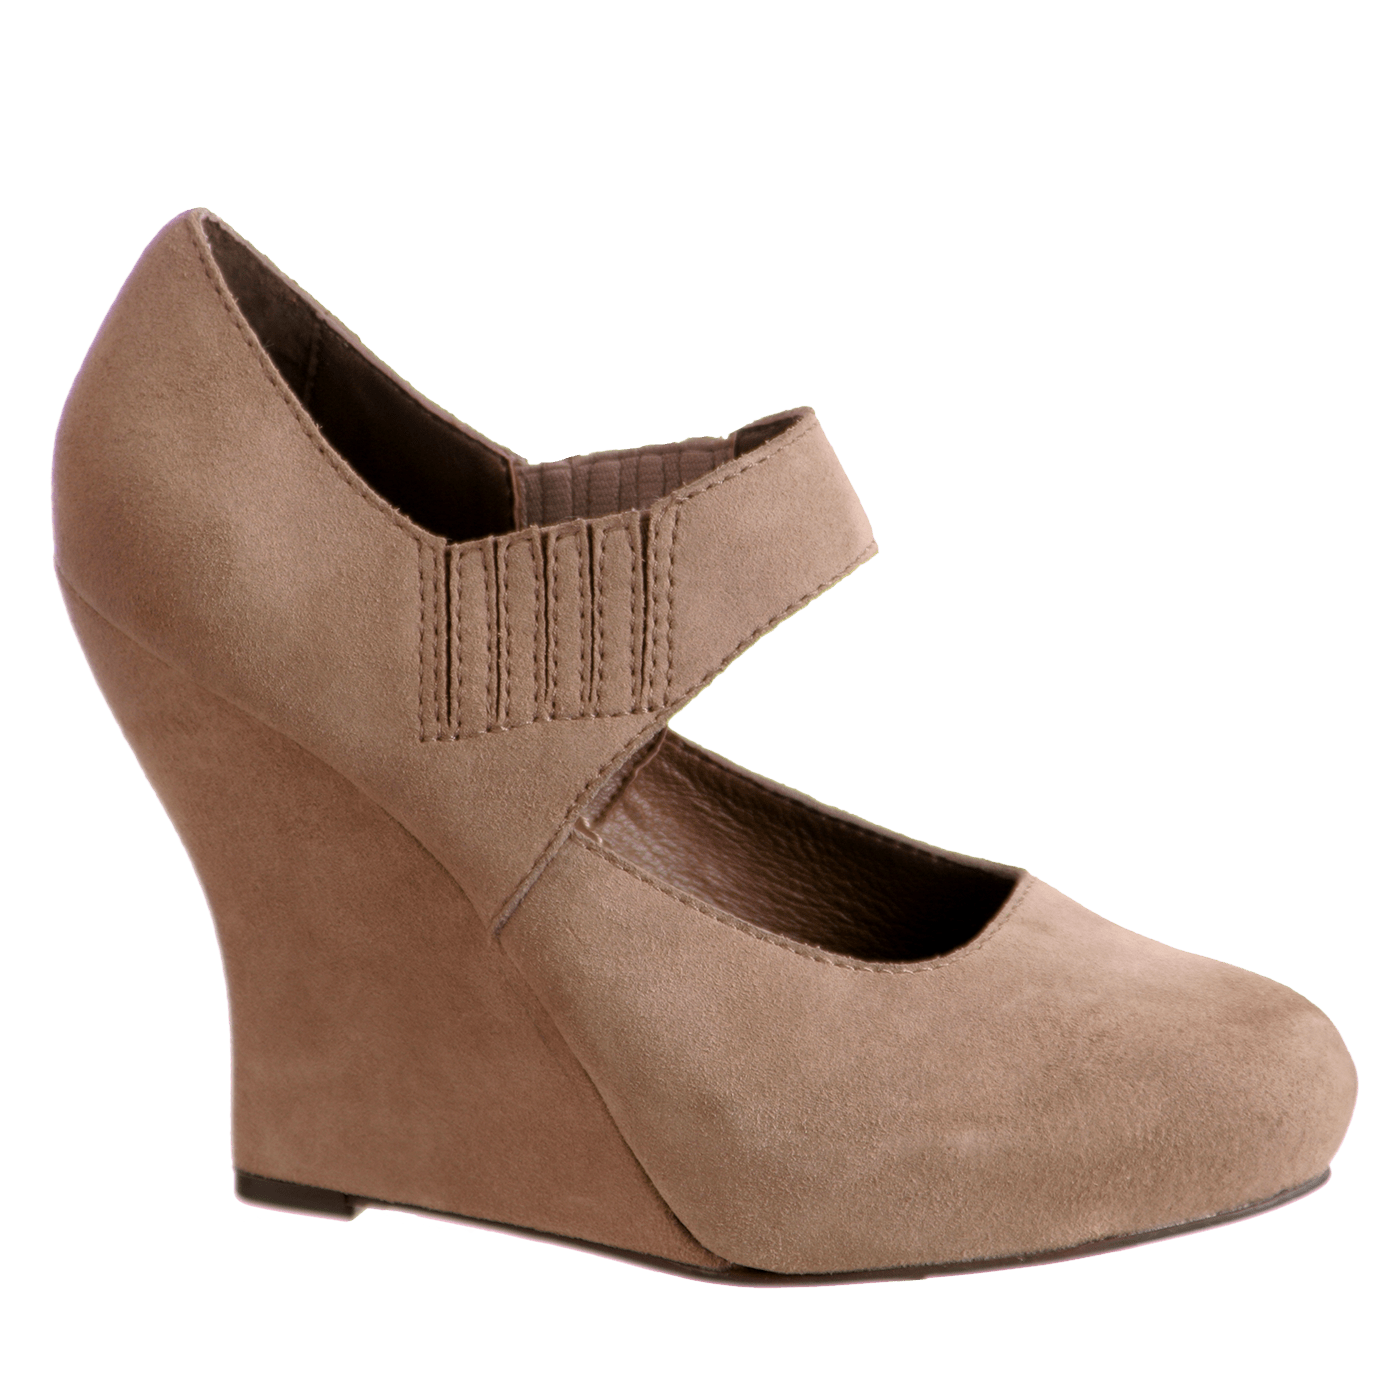 c5680570b66 Piccolo in Taupe Grey Closed Toe Wedges